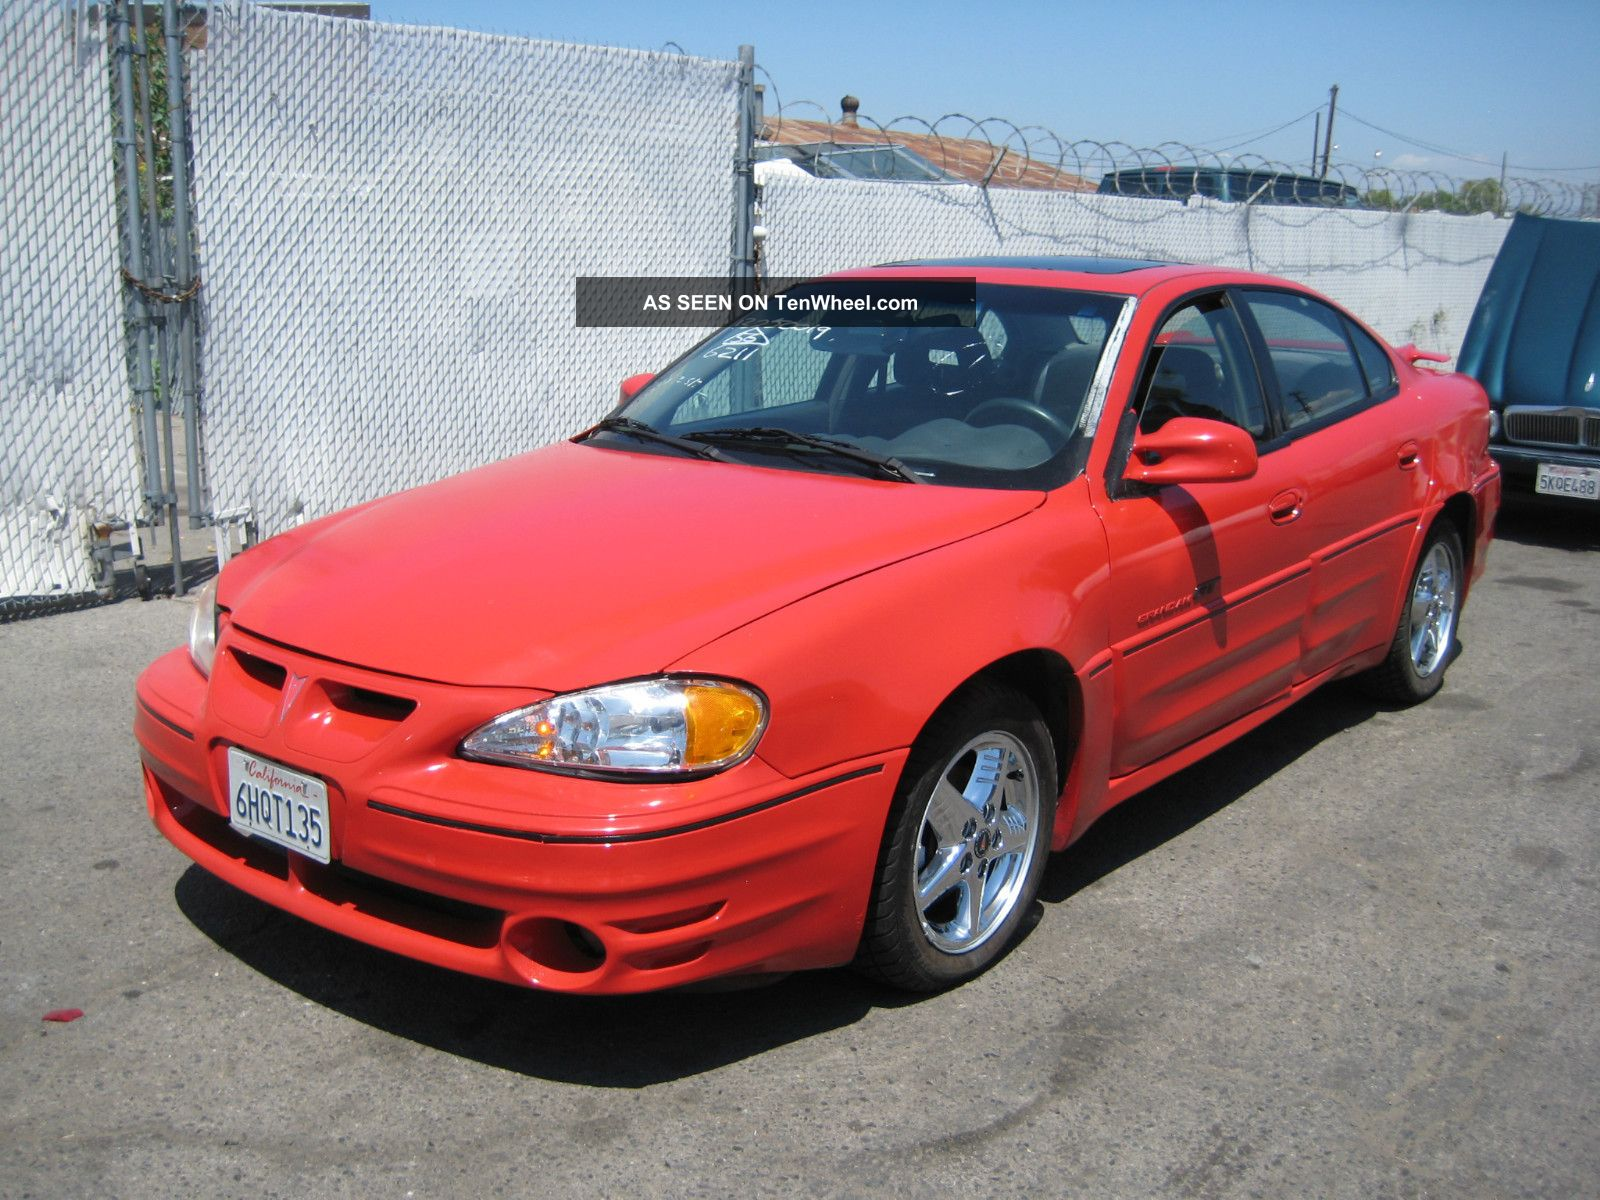 2000 pontiac grand am gt sedan 4 door 3 4l tenwheel